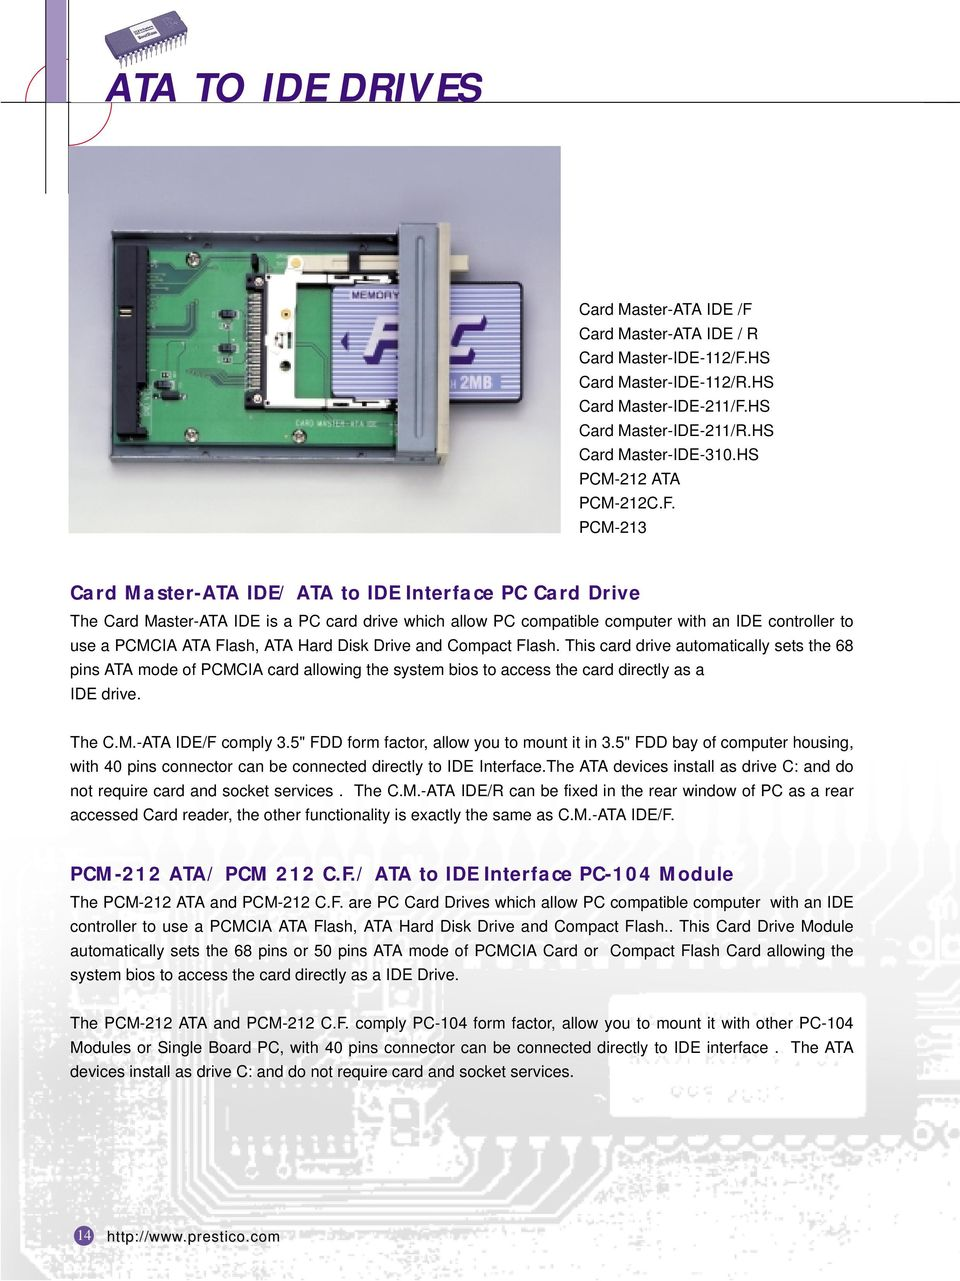 Ata To Ide Drives Card Master Interface Pc Notebook Cdrom Usb External Drive Circuit Board 3 Hs 112 Rhs